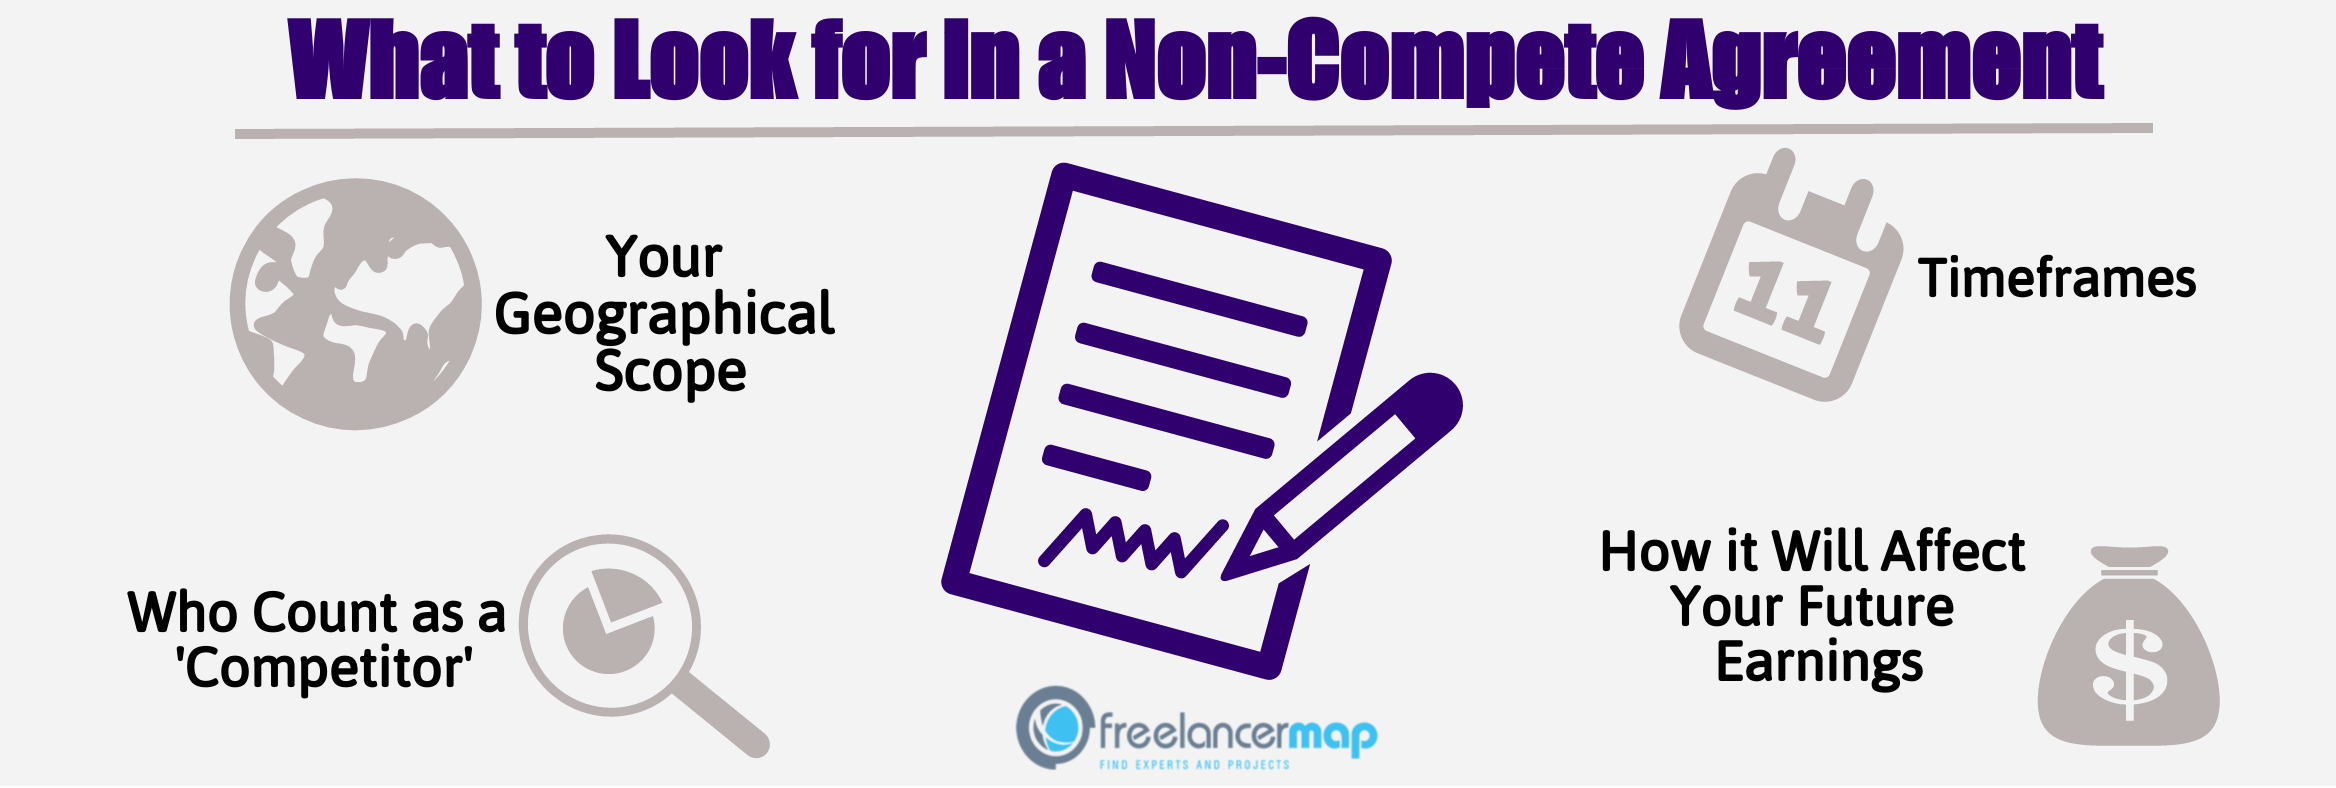 What to look for in a non compete agreement